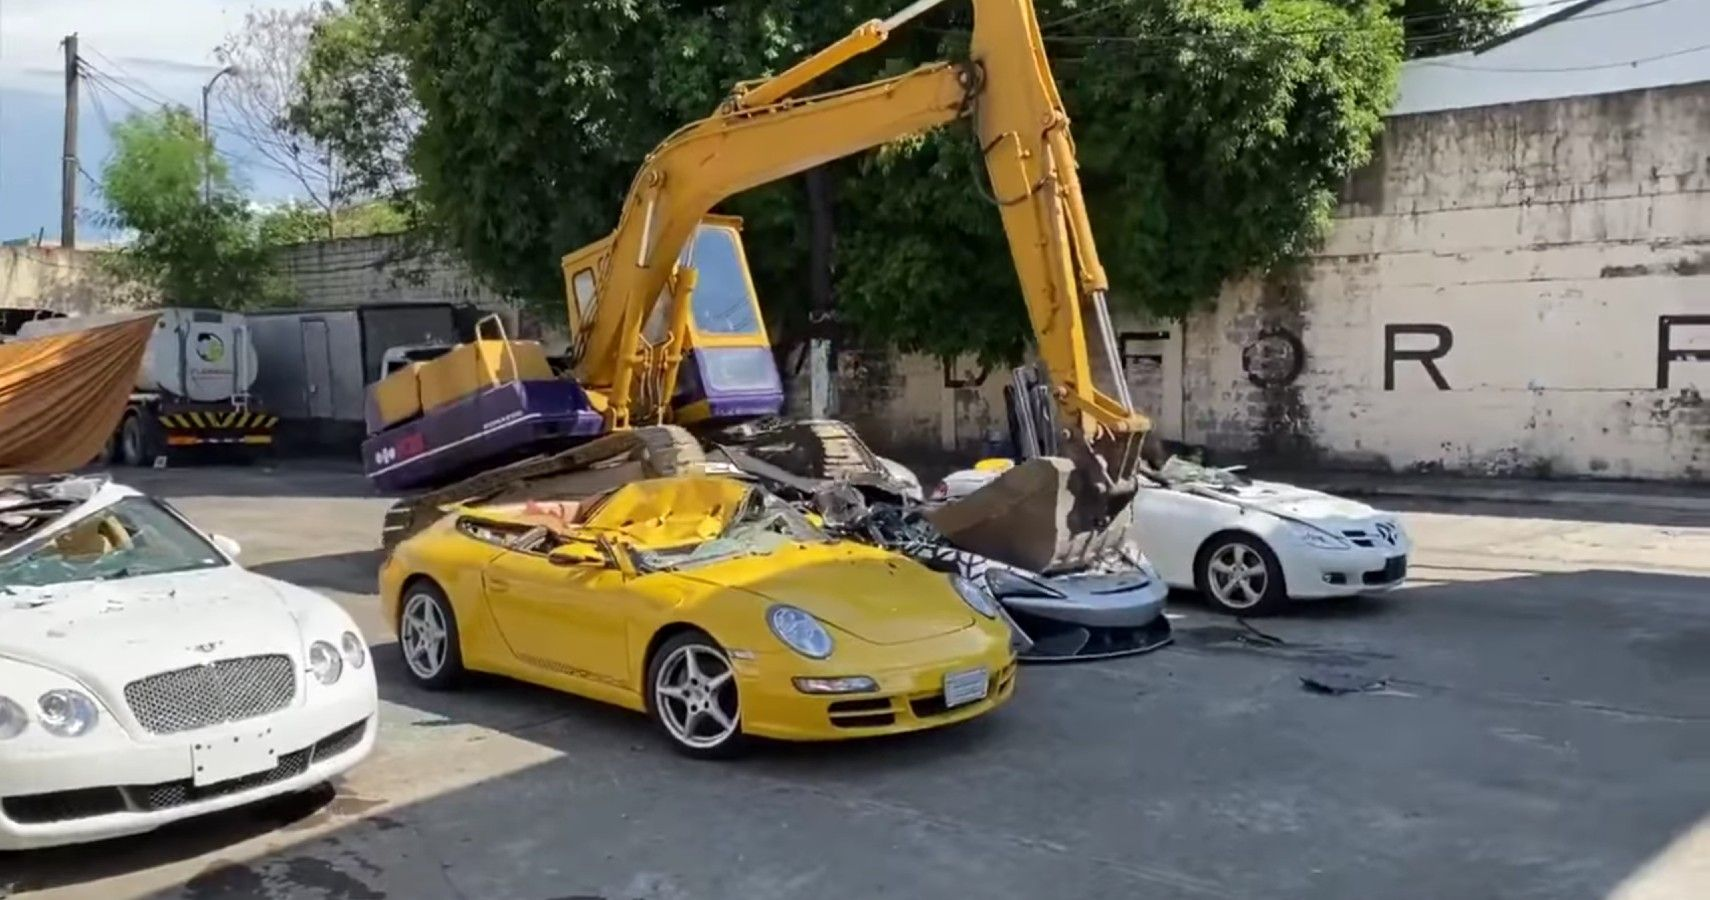 McLaren 620R Among Seven Luxury Cars Crushed By Excavator In Public Demonstration